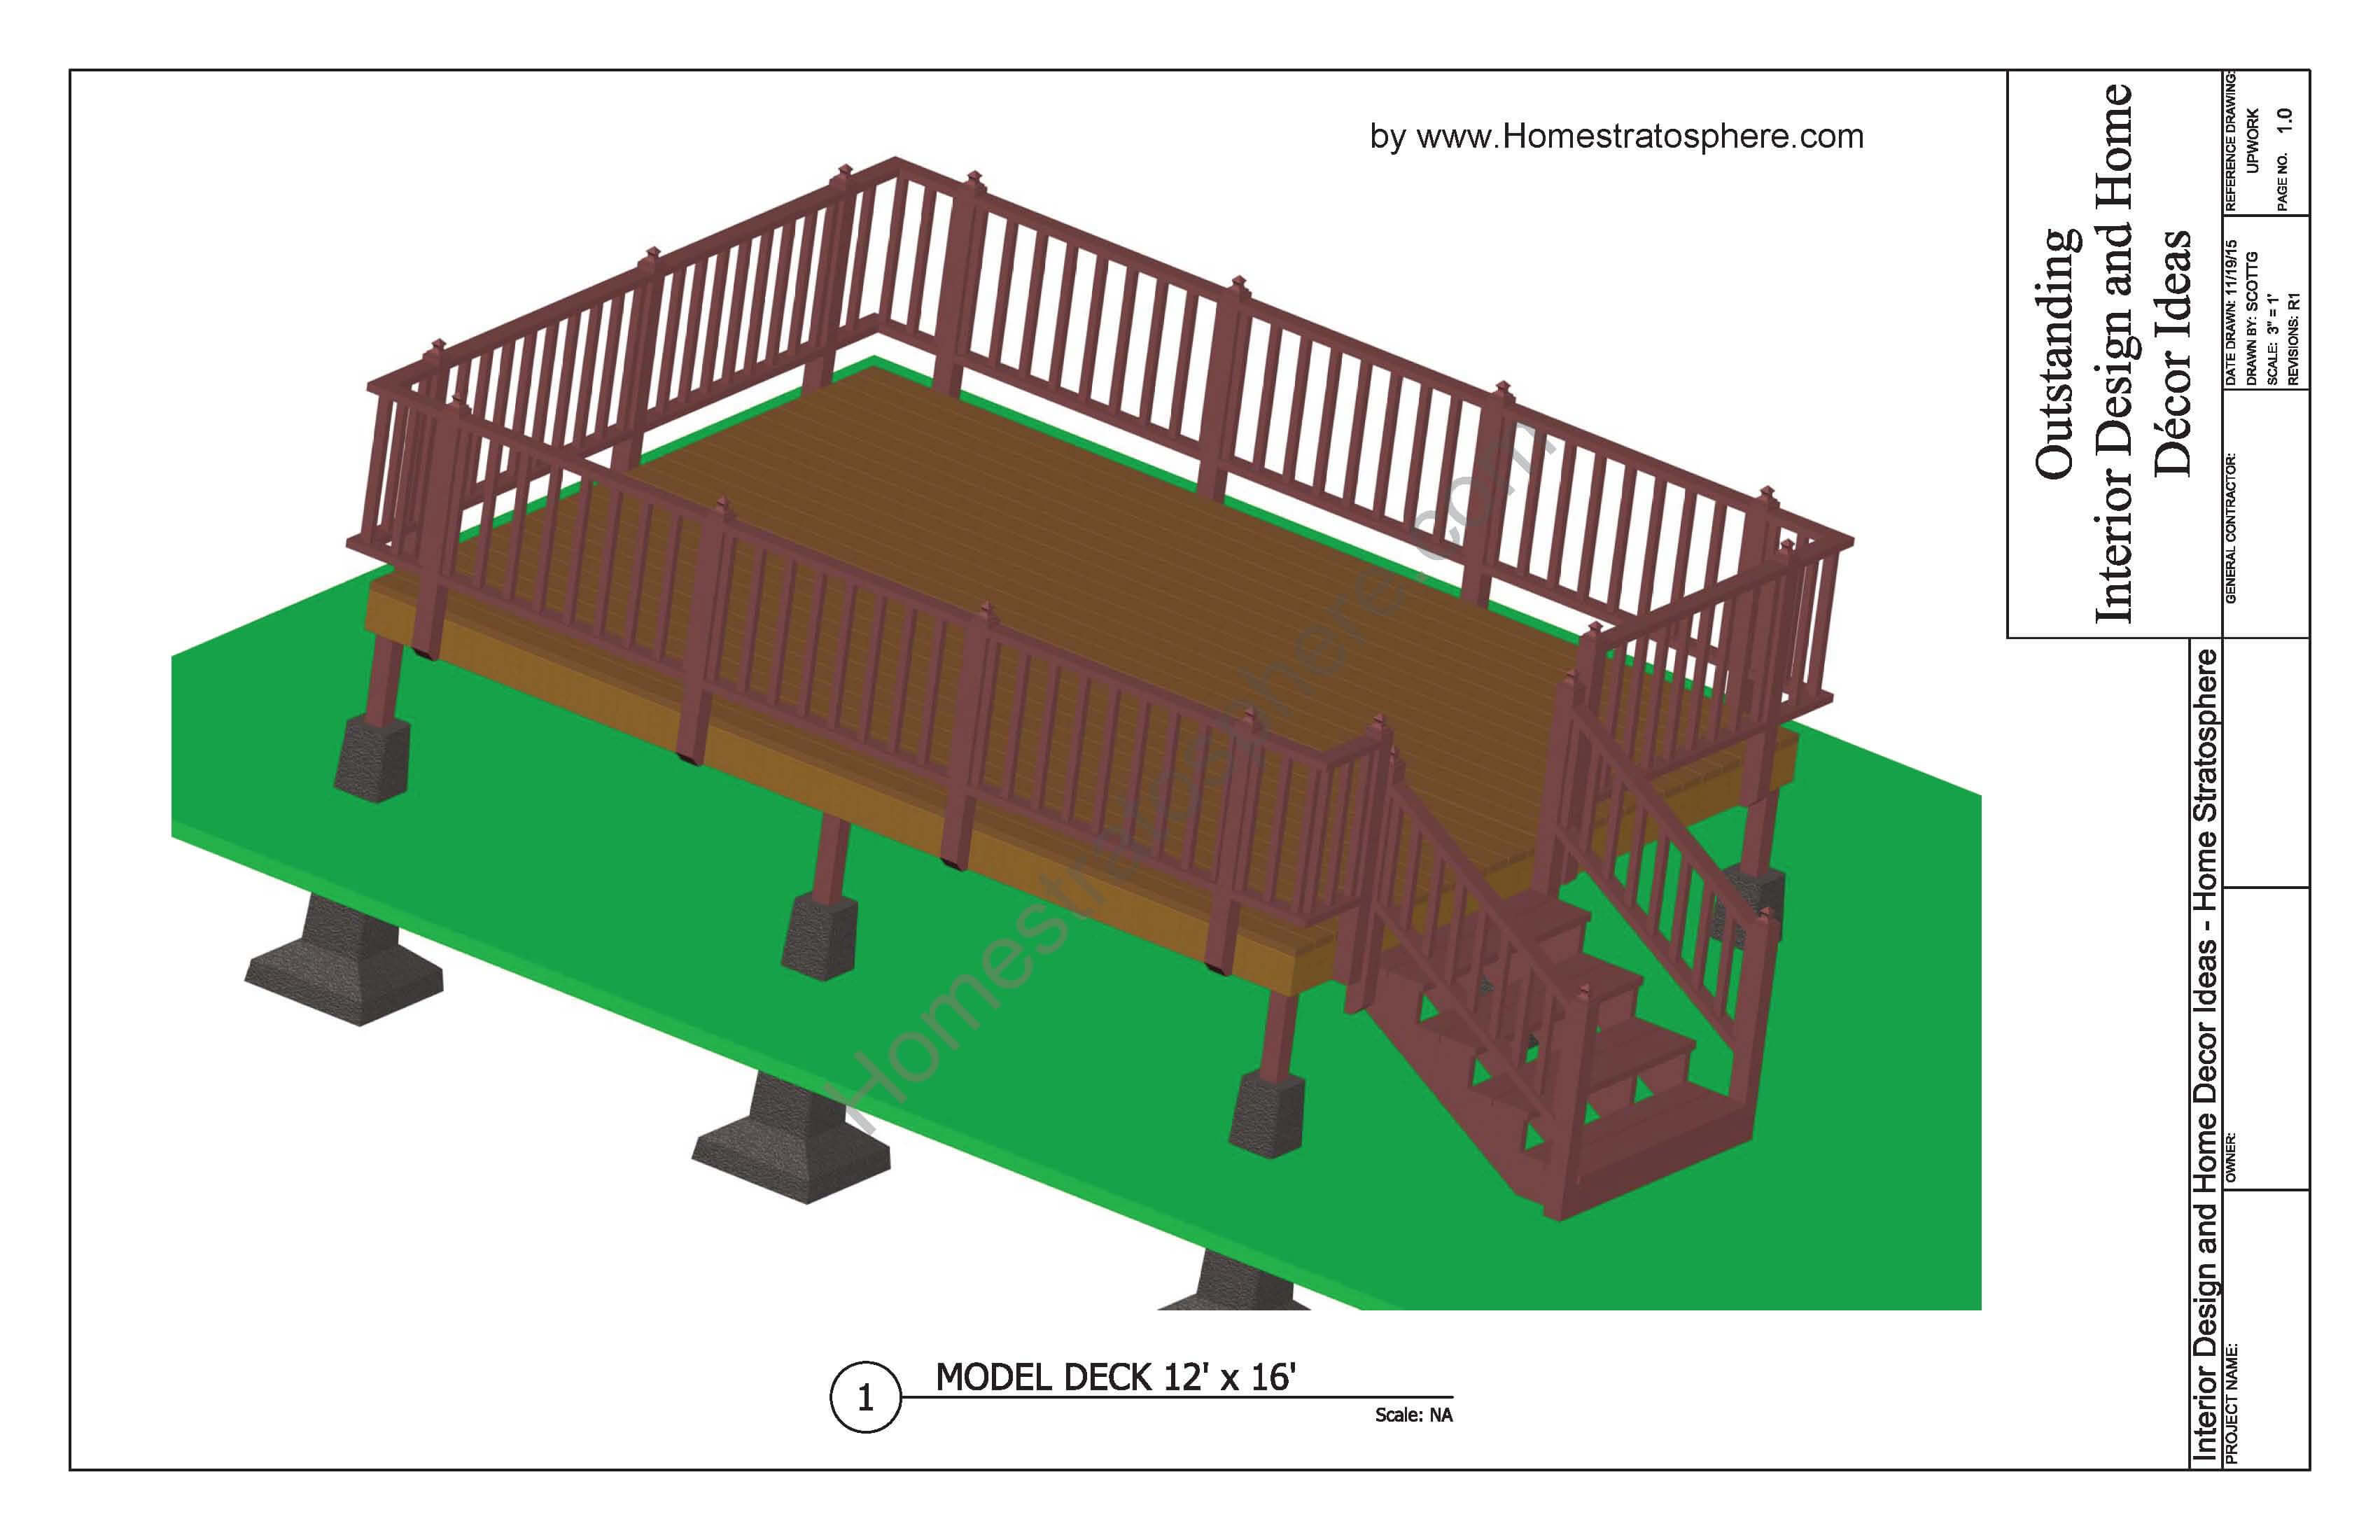 Free deck plans and blueprints online with pdf downloads for Create blueprints online free